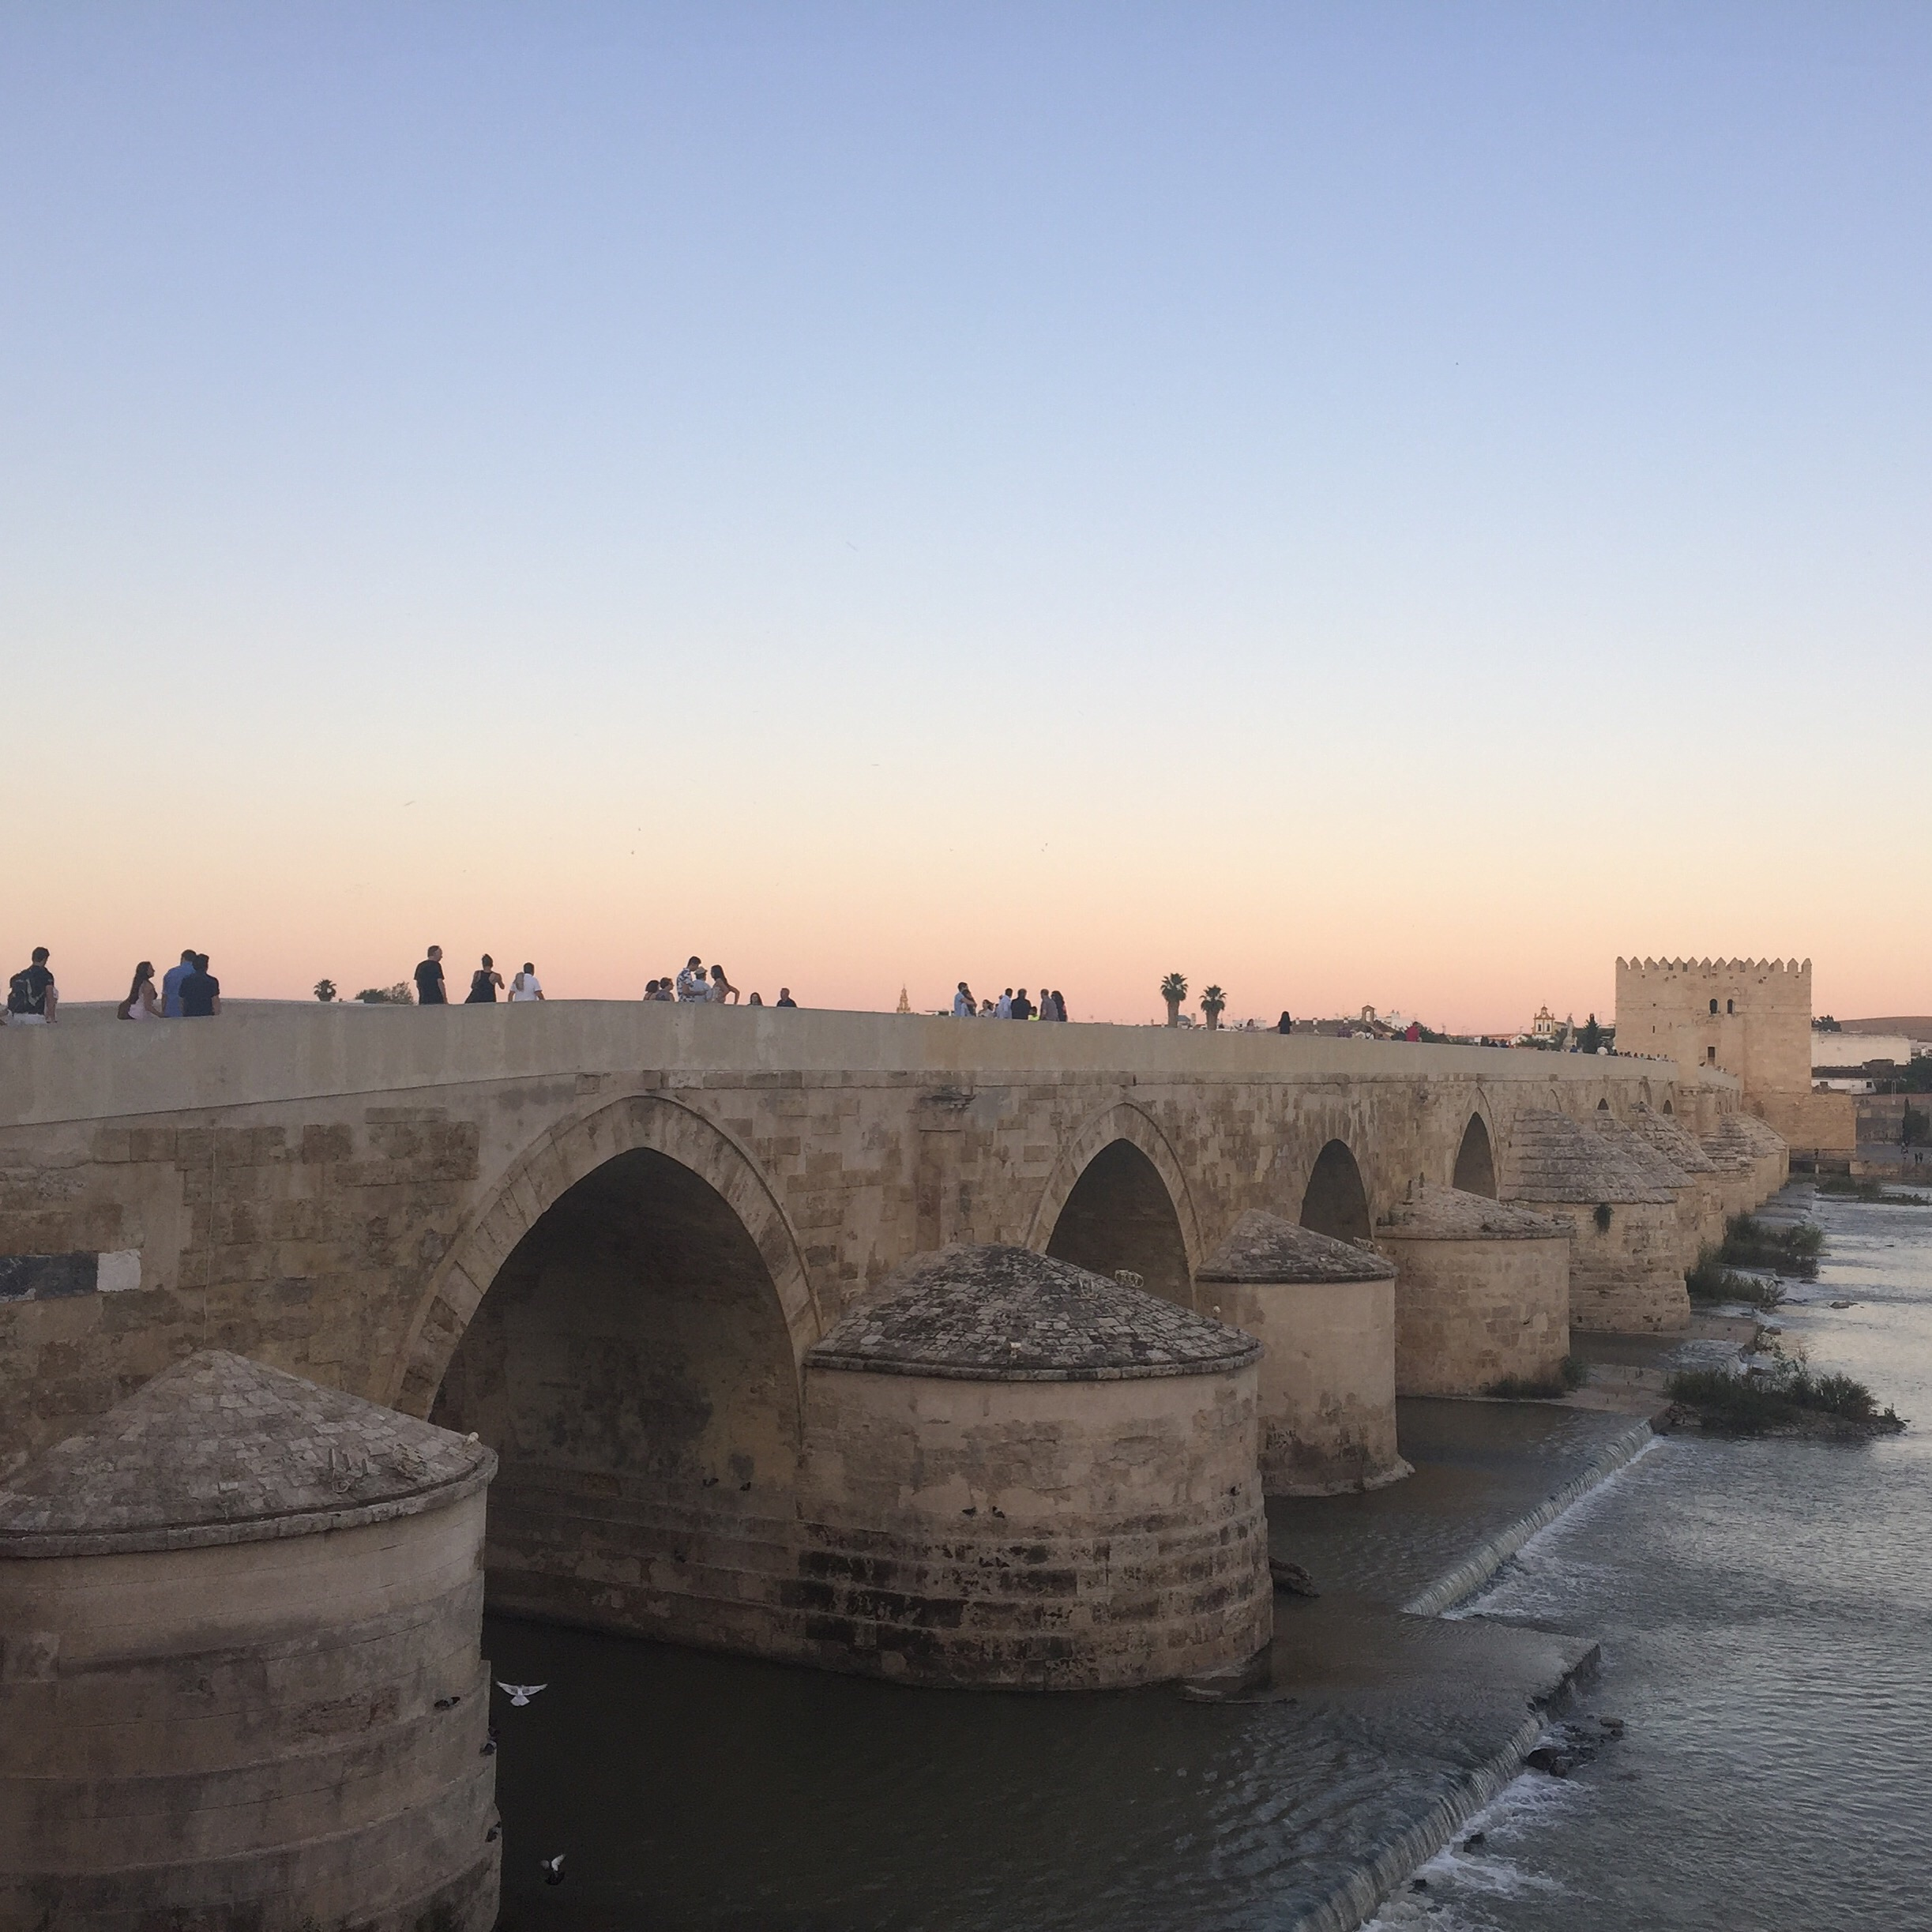 Roman Bridge at Cordoba. The sunset made a pretty town beautiful.